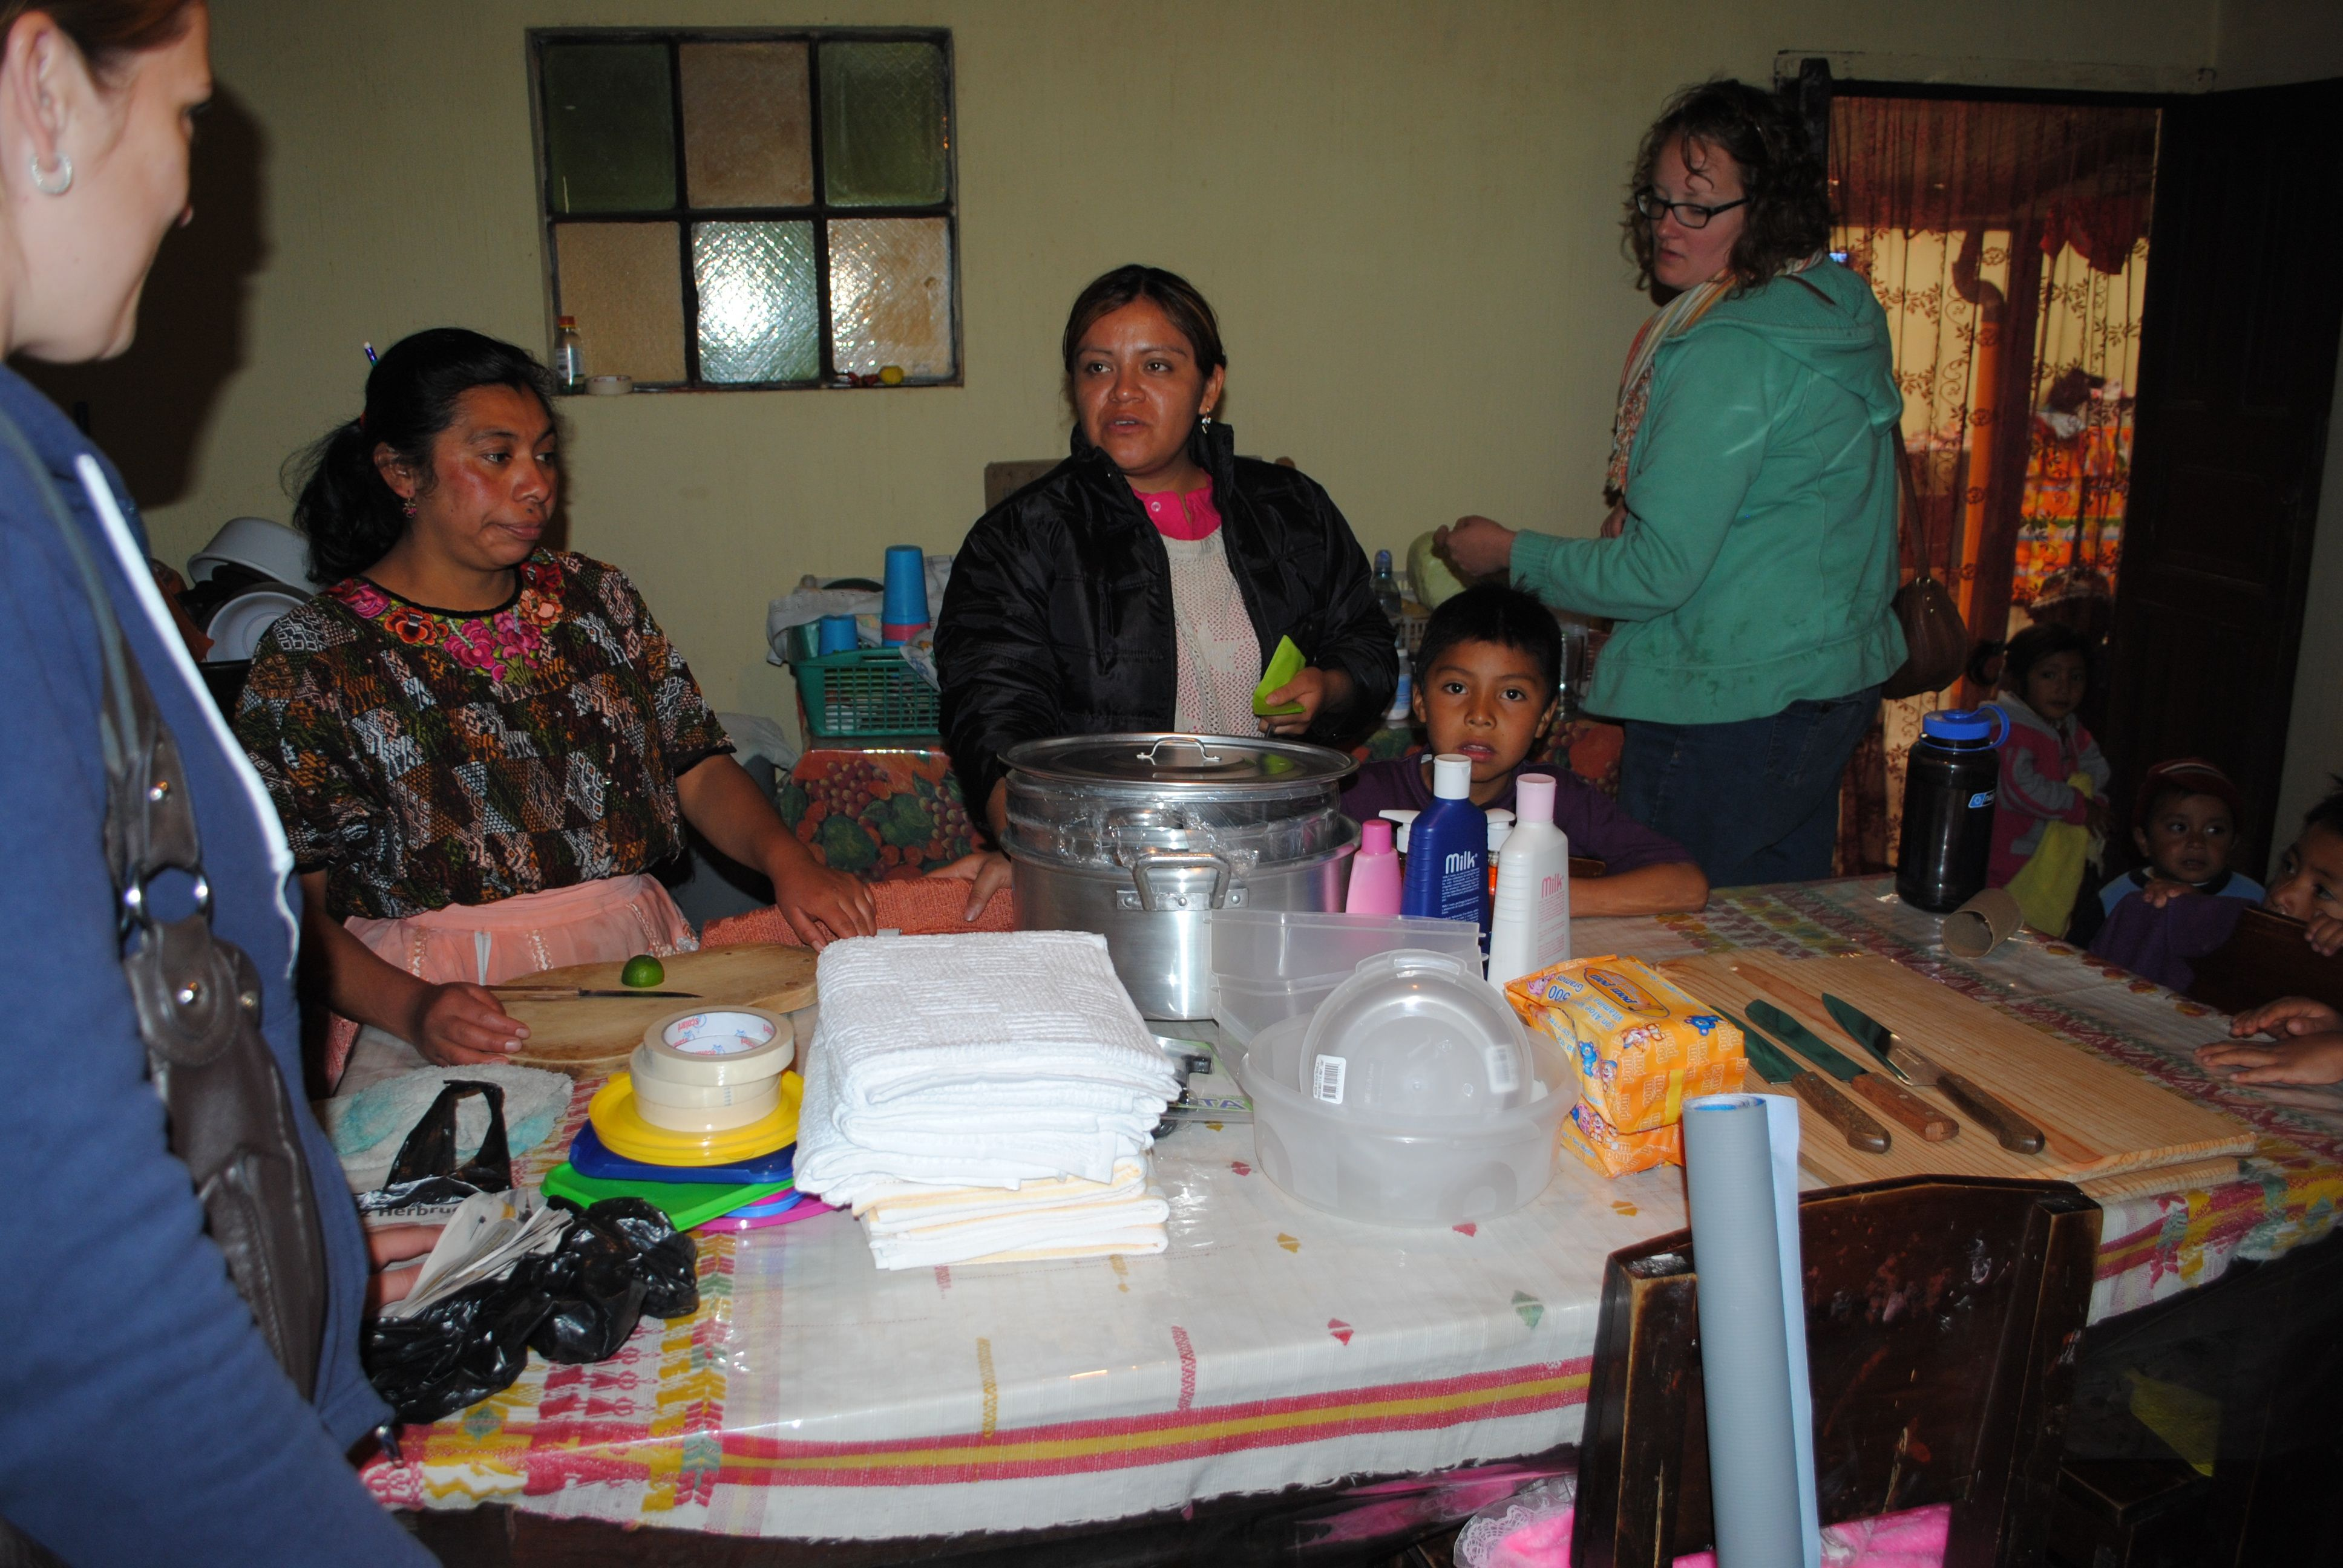 Abroaderview Donations For The Children Center Guatemala Quetzaltenango  March 2014 . Basic Kitchen Supplies, Pots